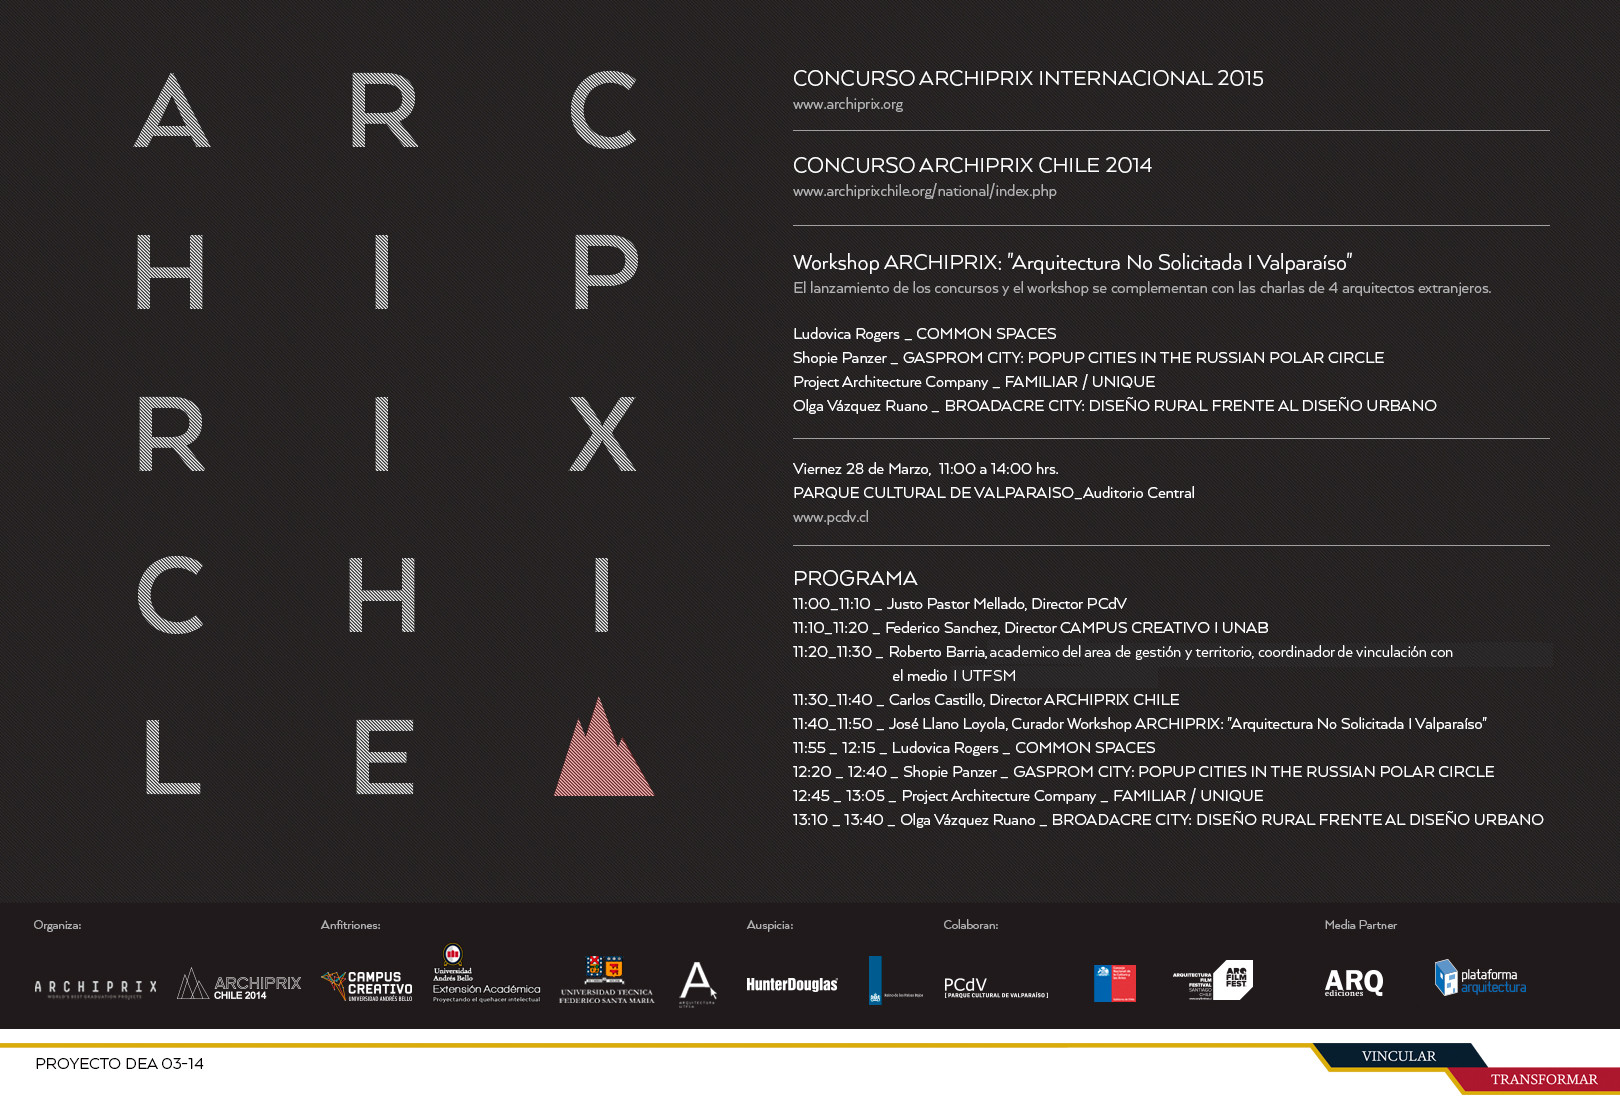 Lanzamiento Archiprix Chile 2014 y Archiprix Internacional 2015 Madrid , Courtesy of Archiprix